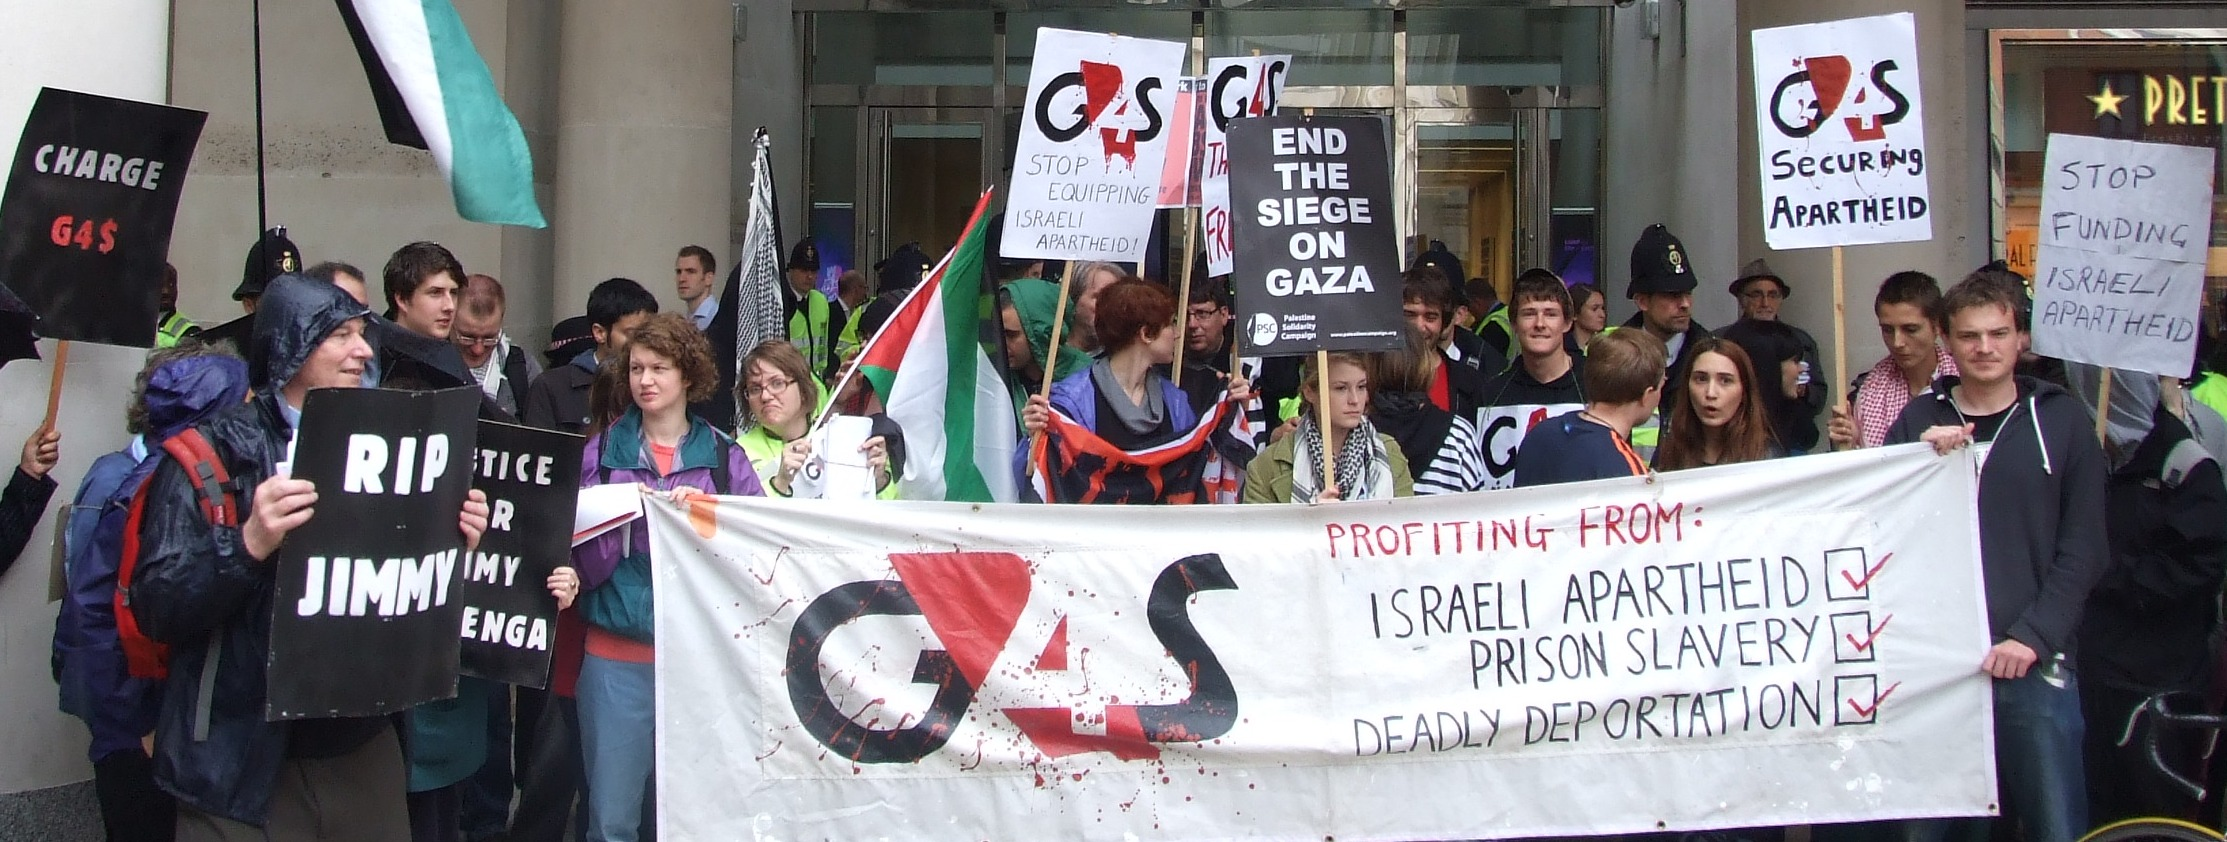 campaigners against G4S